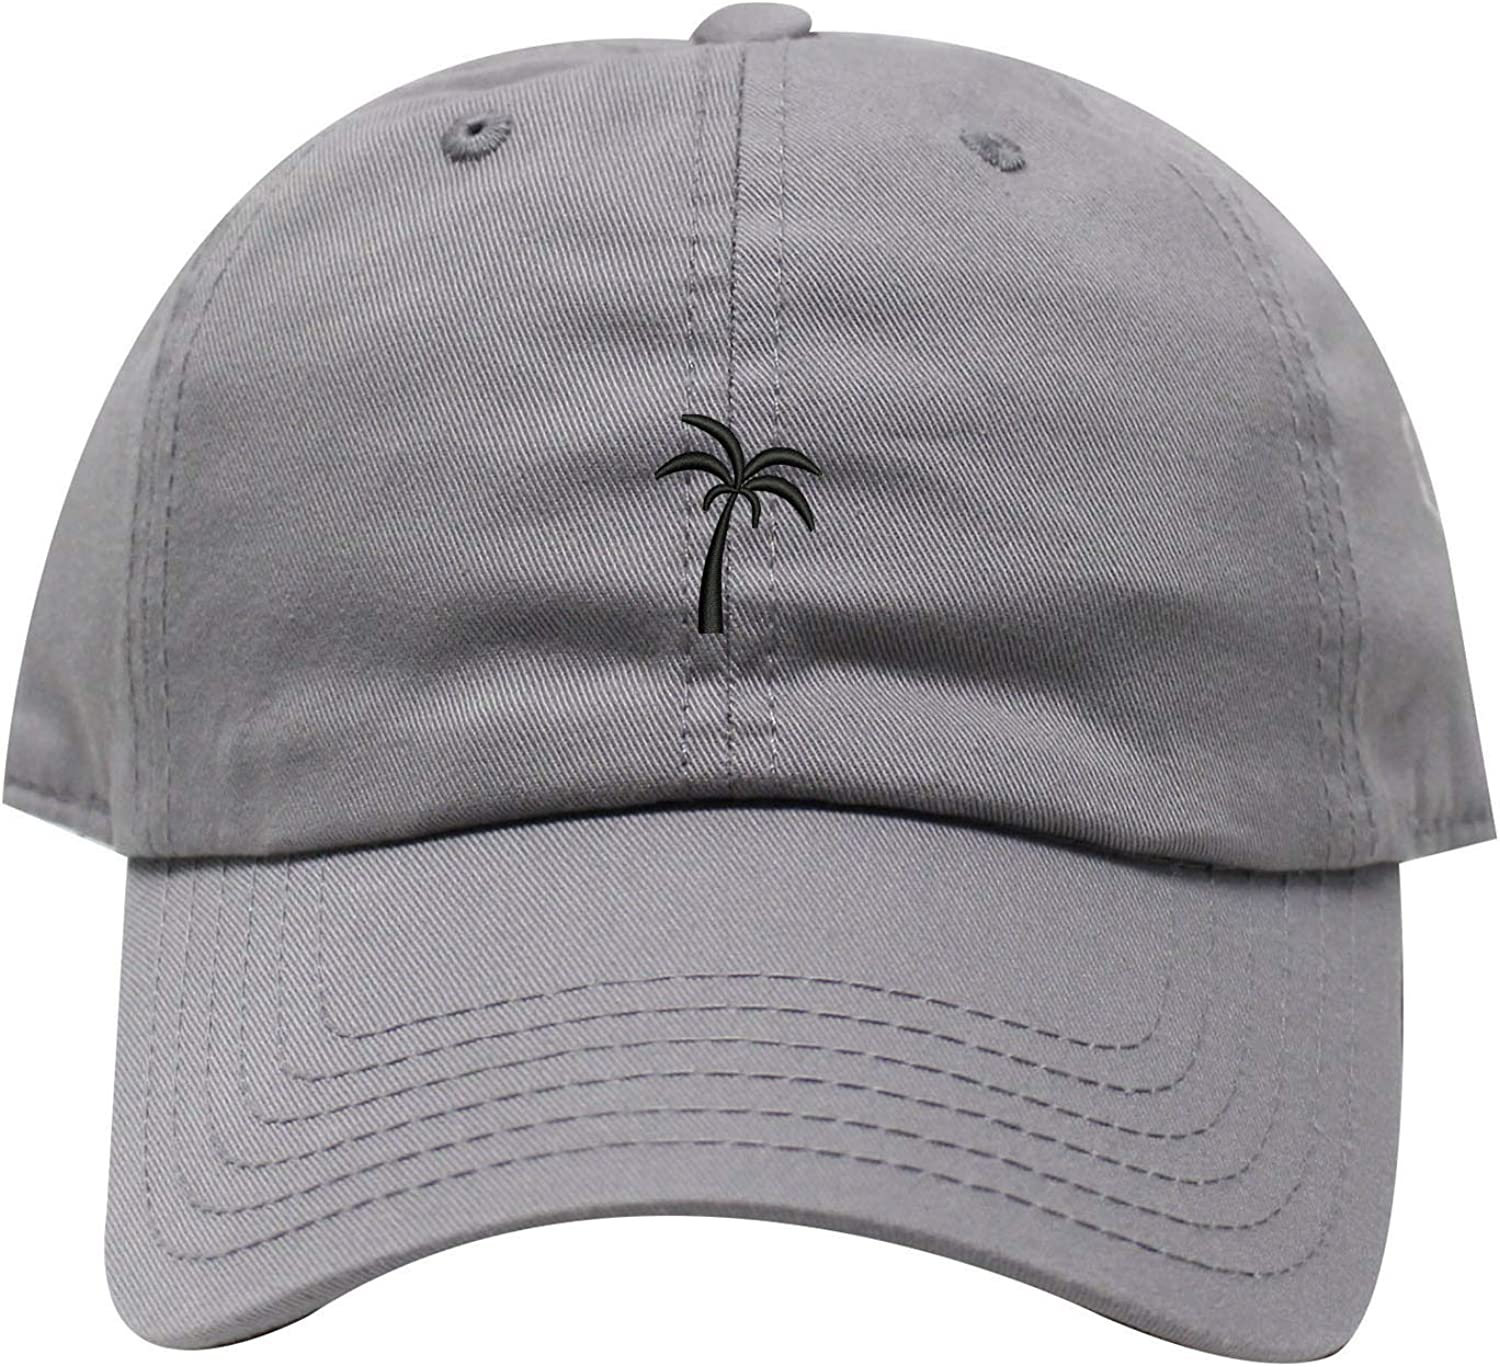 INK STITCH Palm Tree Summer Unstructured Cotton Baseball Caps 21 Colors